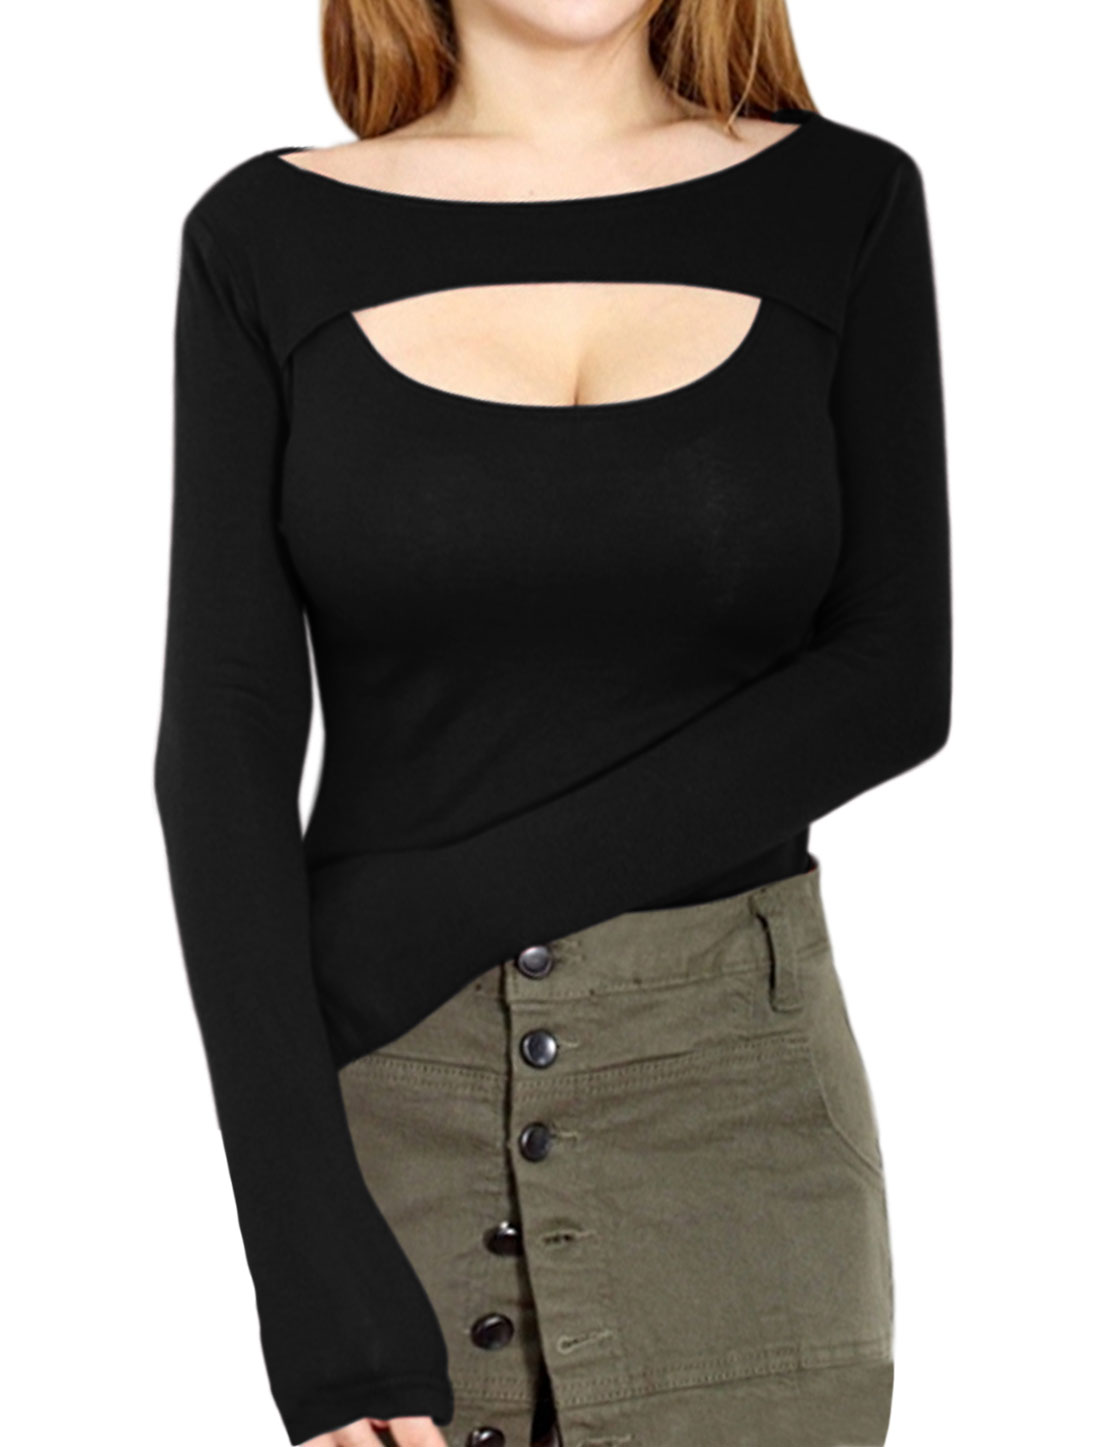 Women Long Sleeves Boat Neck Slim Fit Cut Out Top Black XS